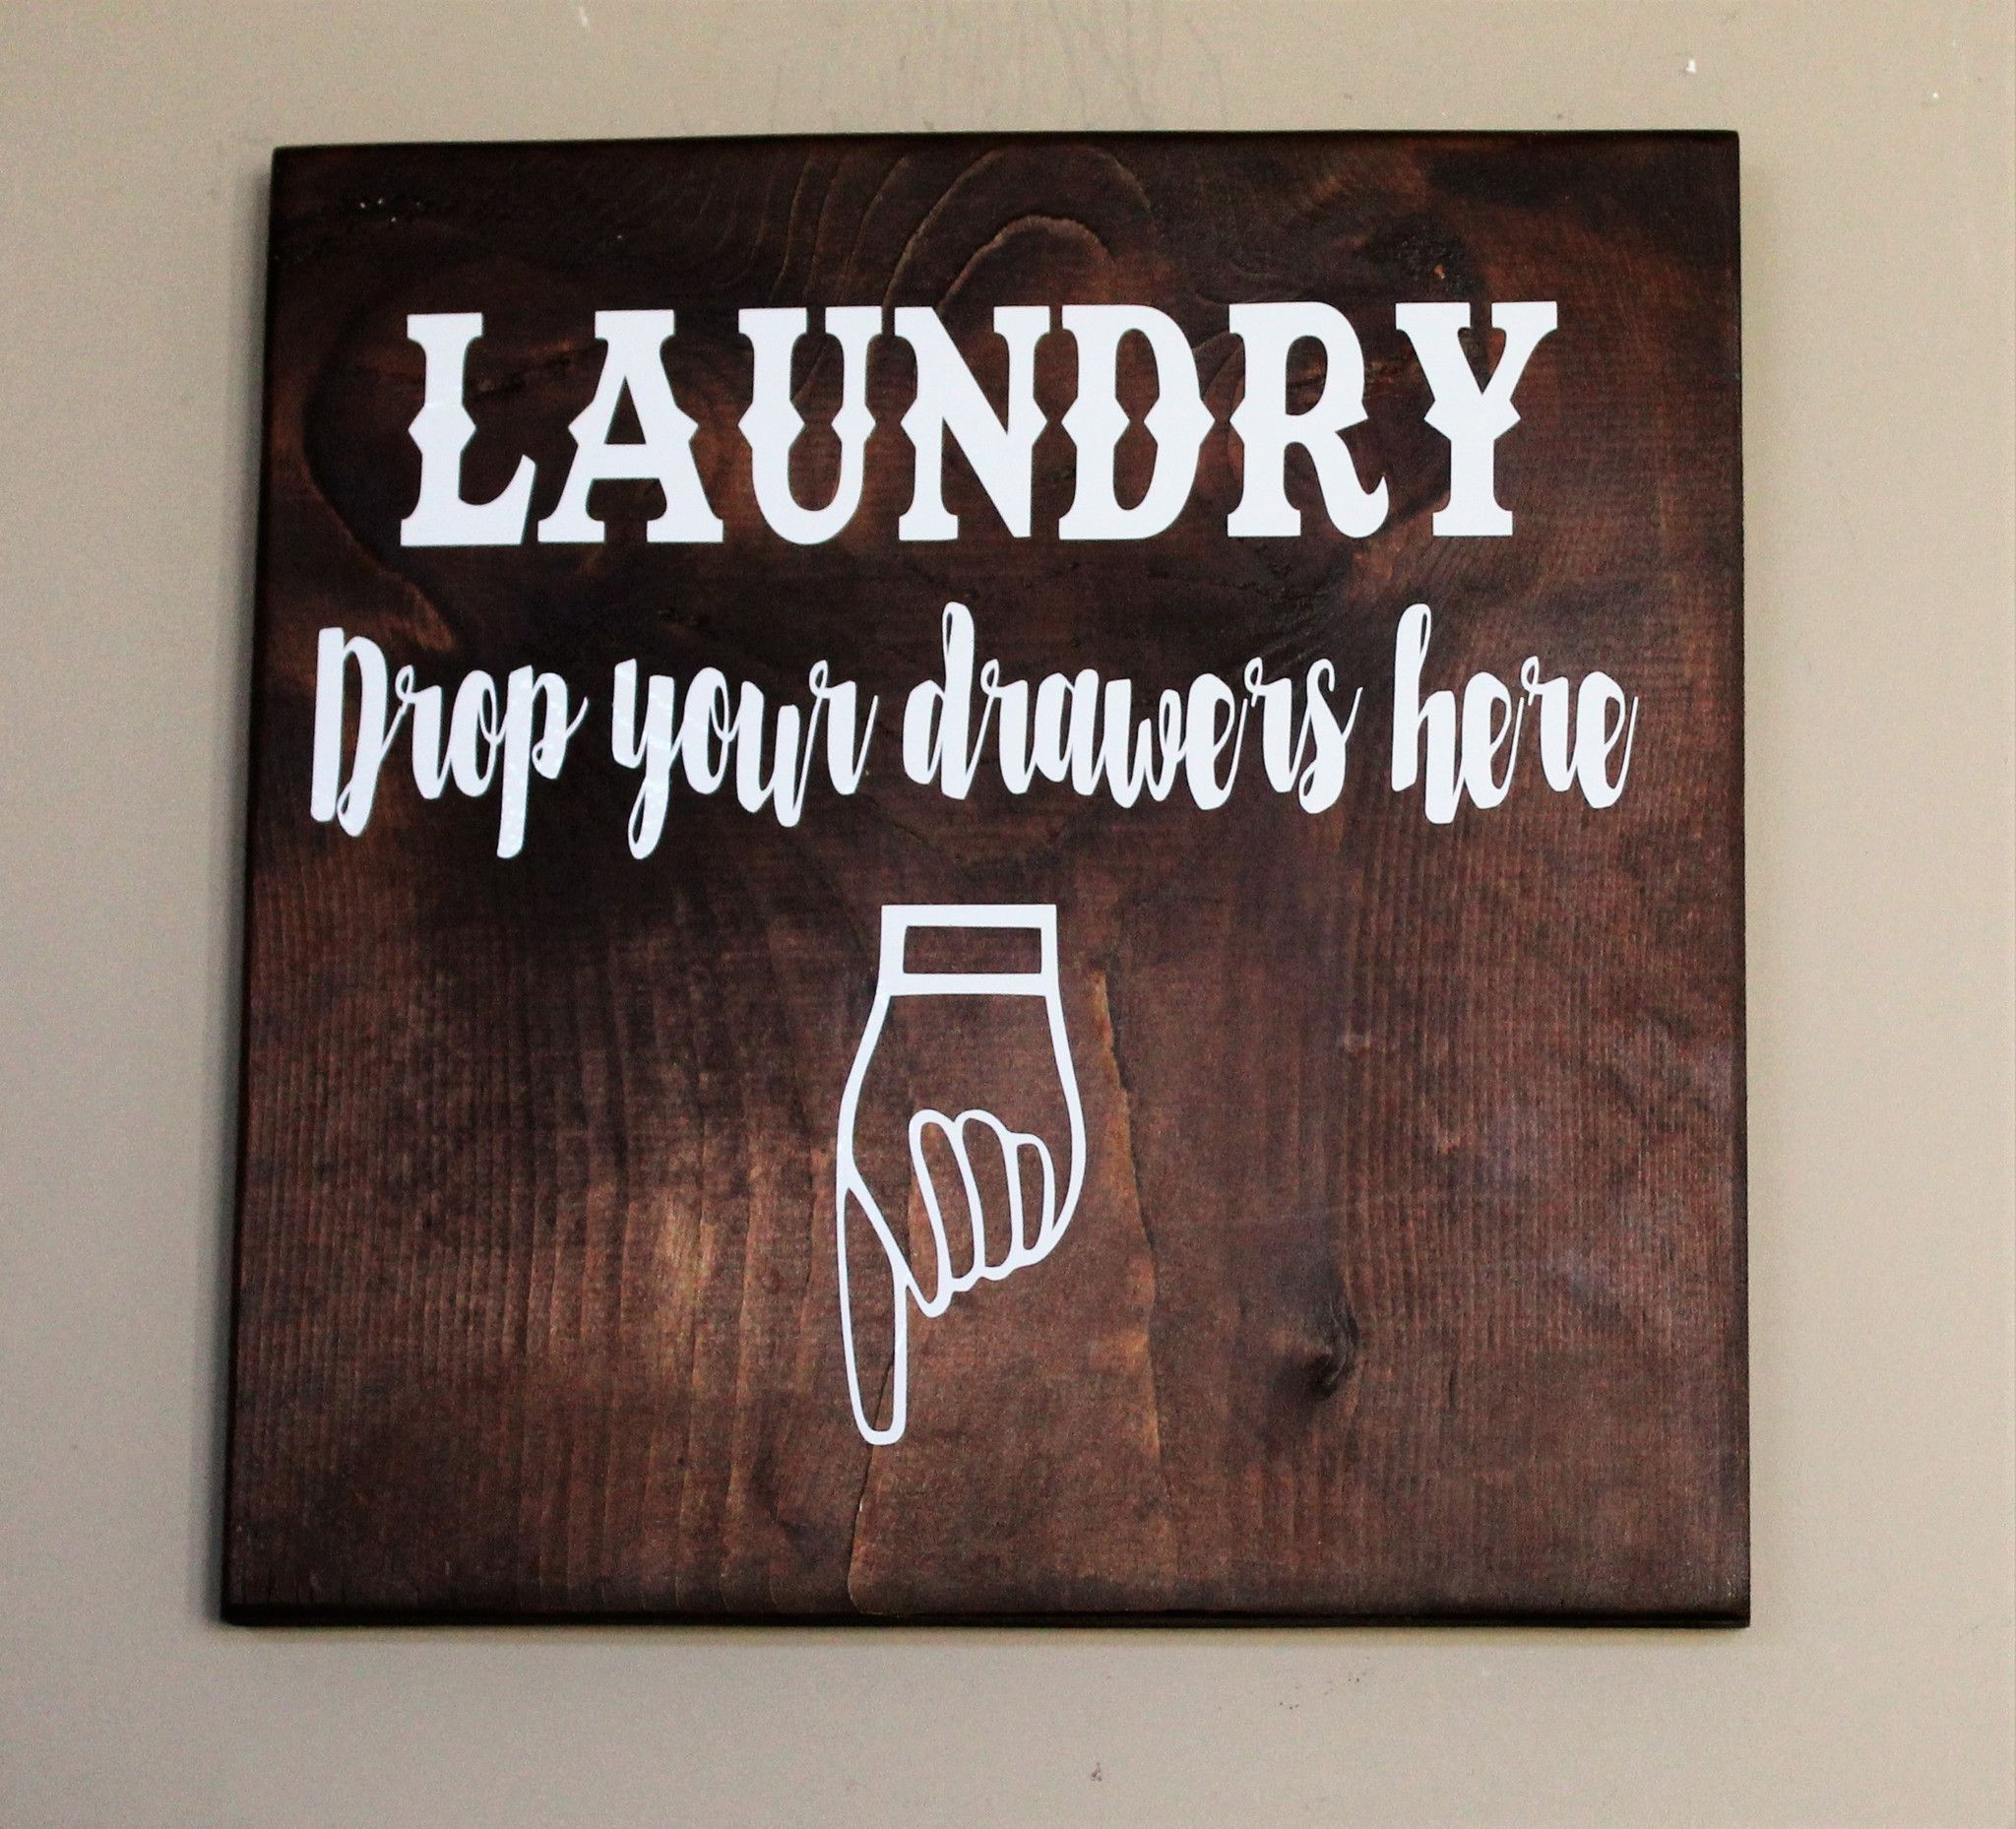 Wooden Laundry Signs For Home Laundry Sign  Drop Your Drawers Here Wood Sign  Laundry Signs